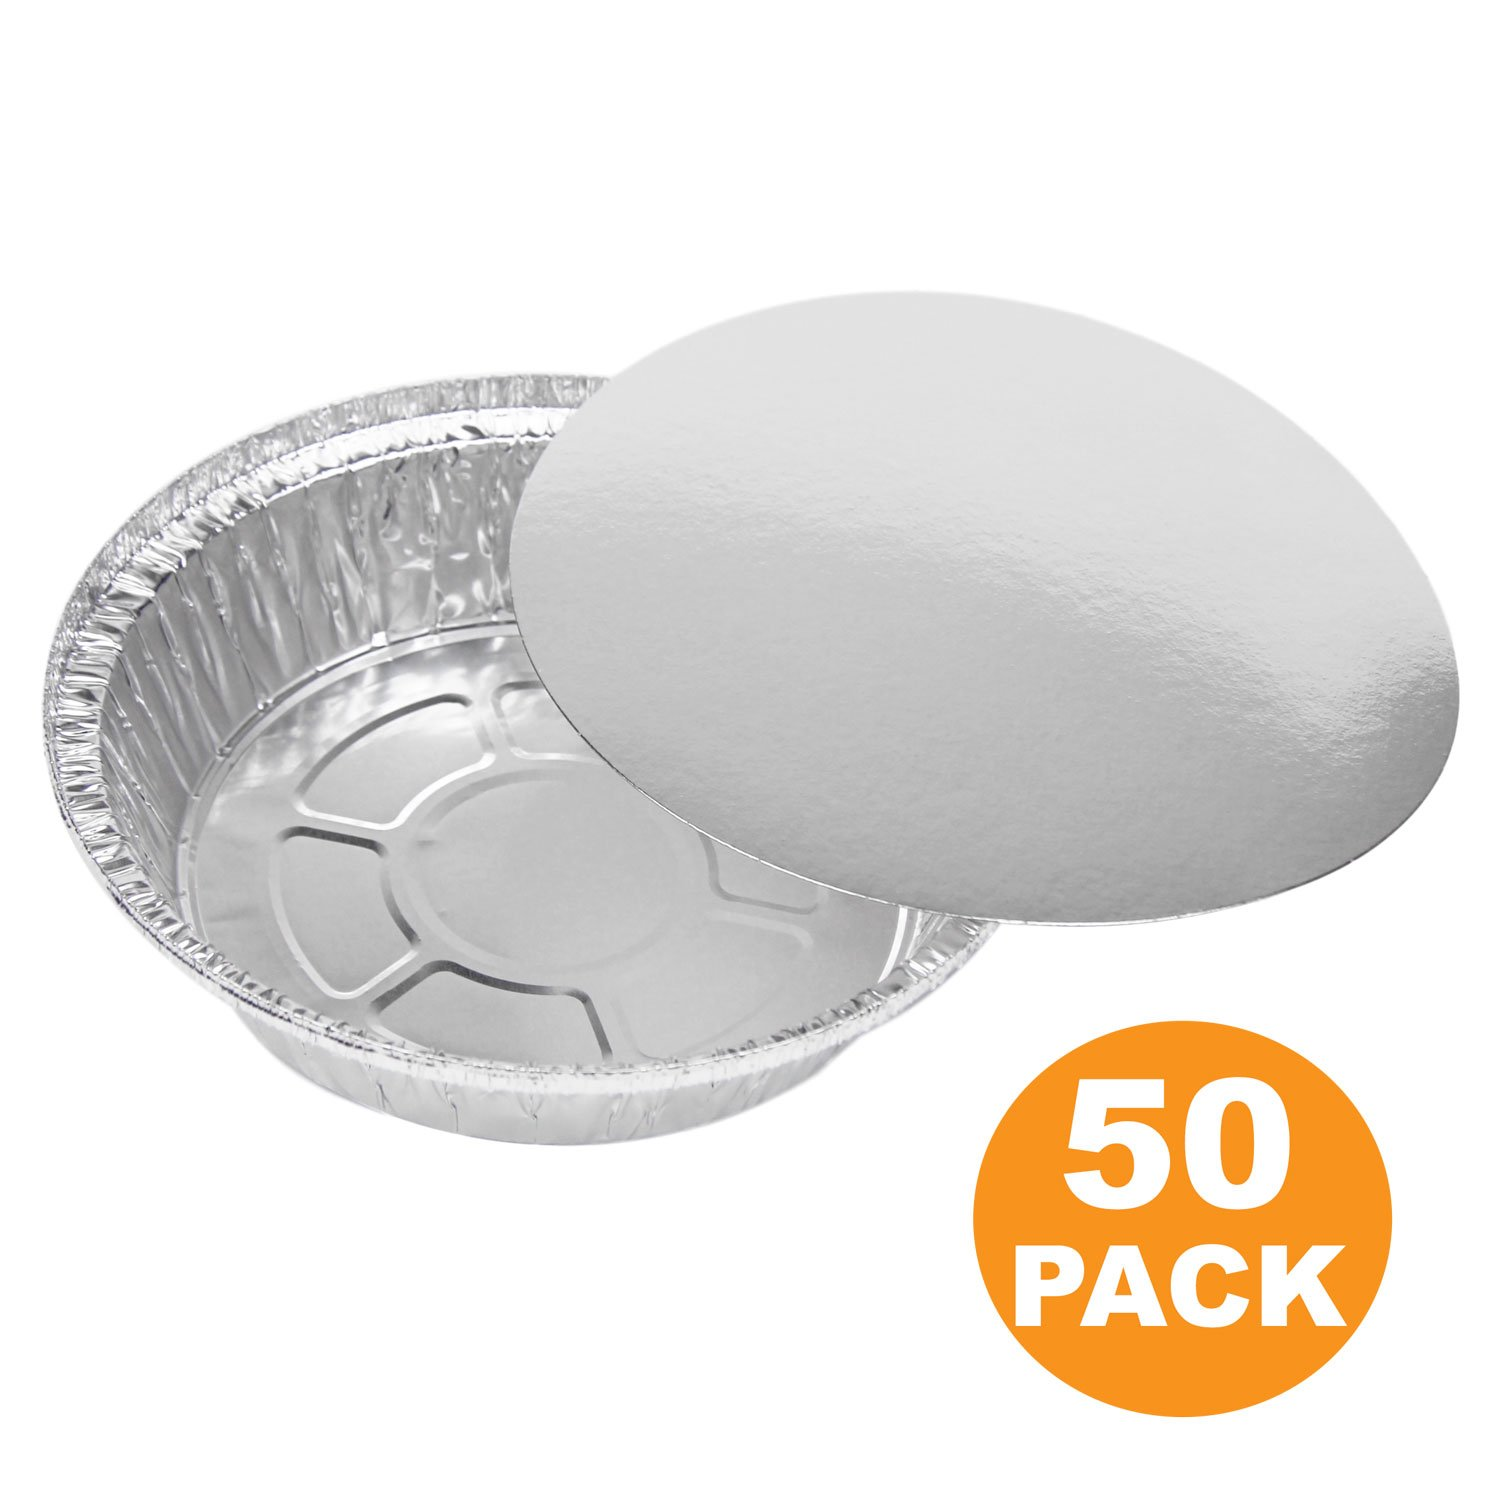 Round 7 Inch 24 oz, 1.5 lb, 0.75 Quart Disposable Aluminum Foil Pan Take Out Food Containers with Flat Board Lids, Steam Table Hot Cold Freezer Roasting Baking Oven Safe